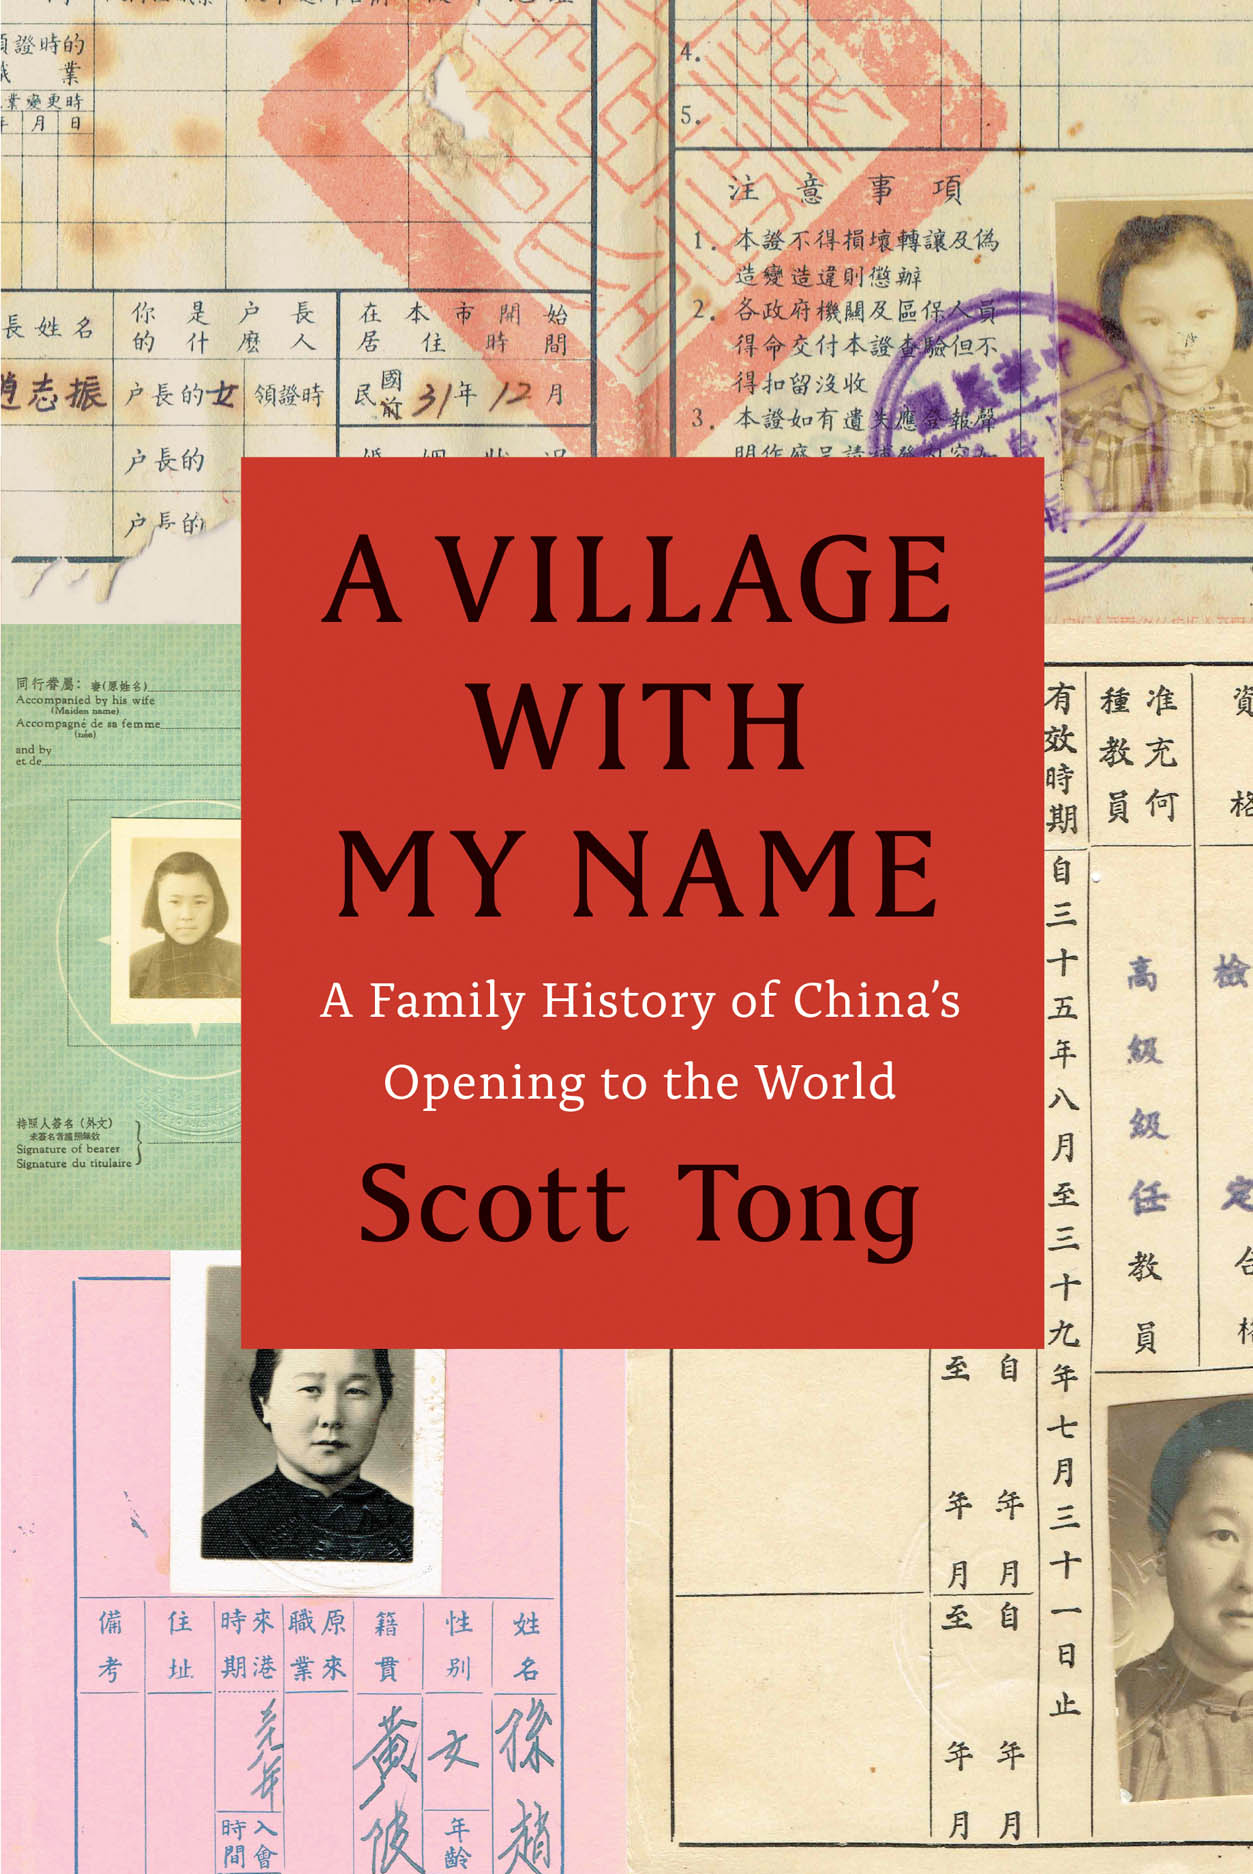 Going home for the Holidays? Take Scott Tong's Fascinating Family History with You.